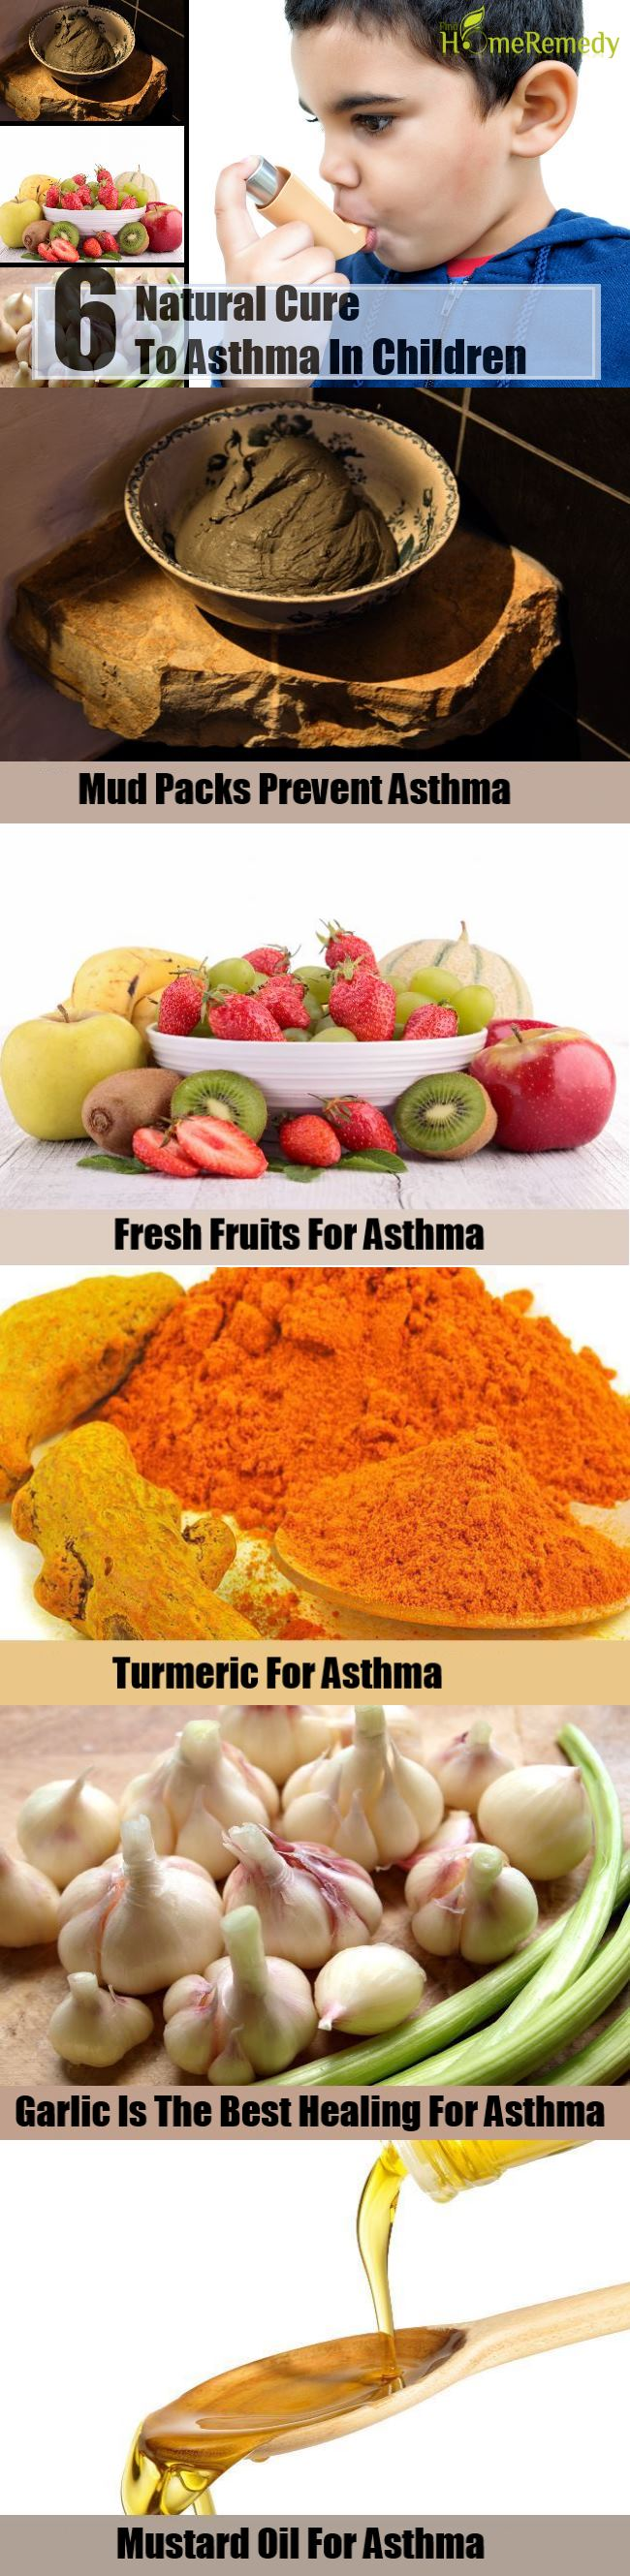 6 Natural Cure For Asthma In Children